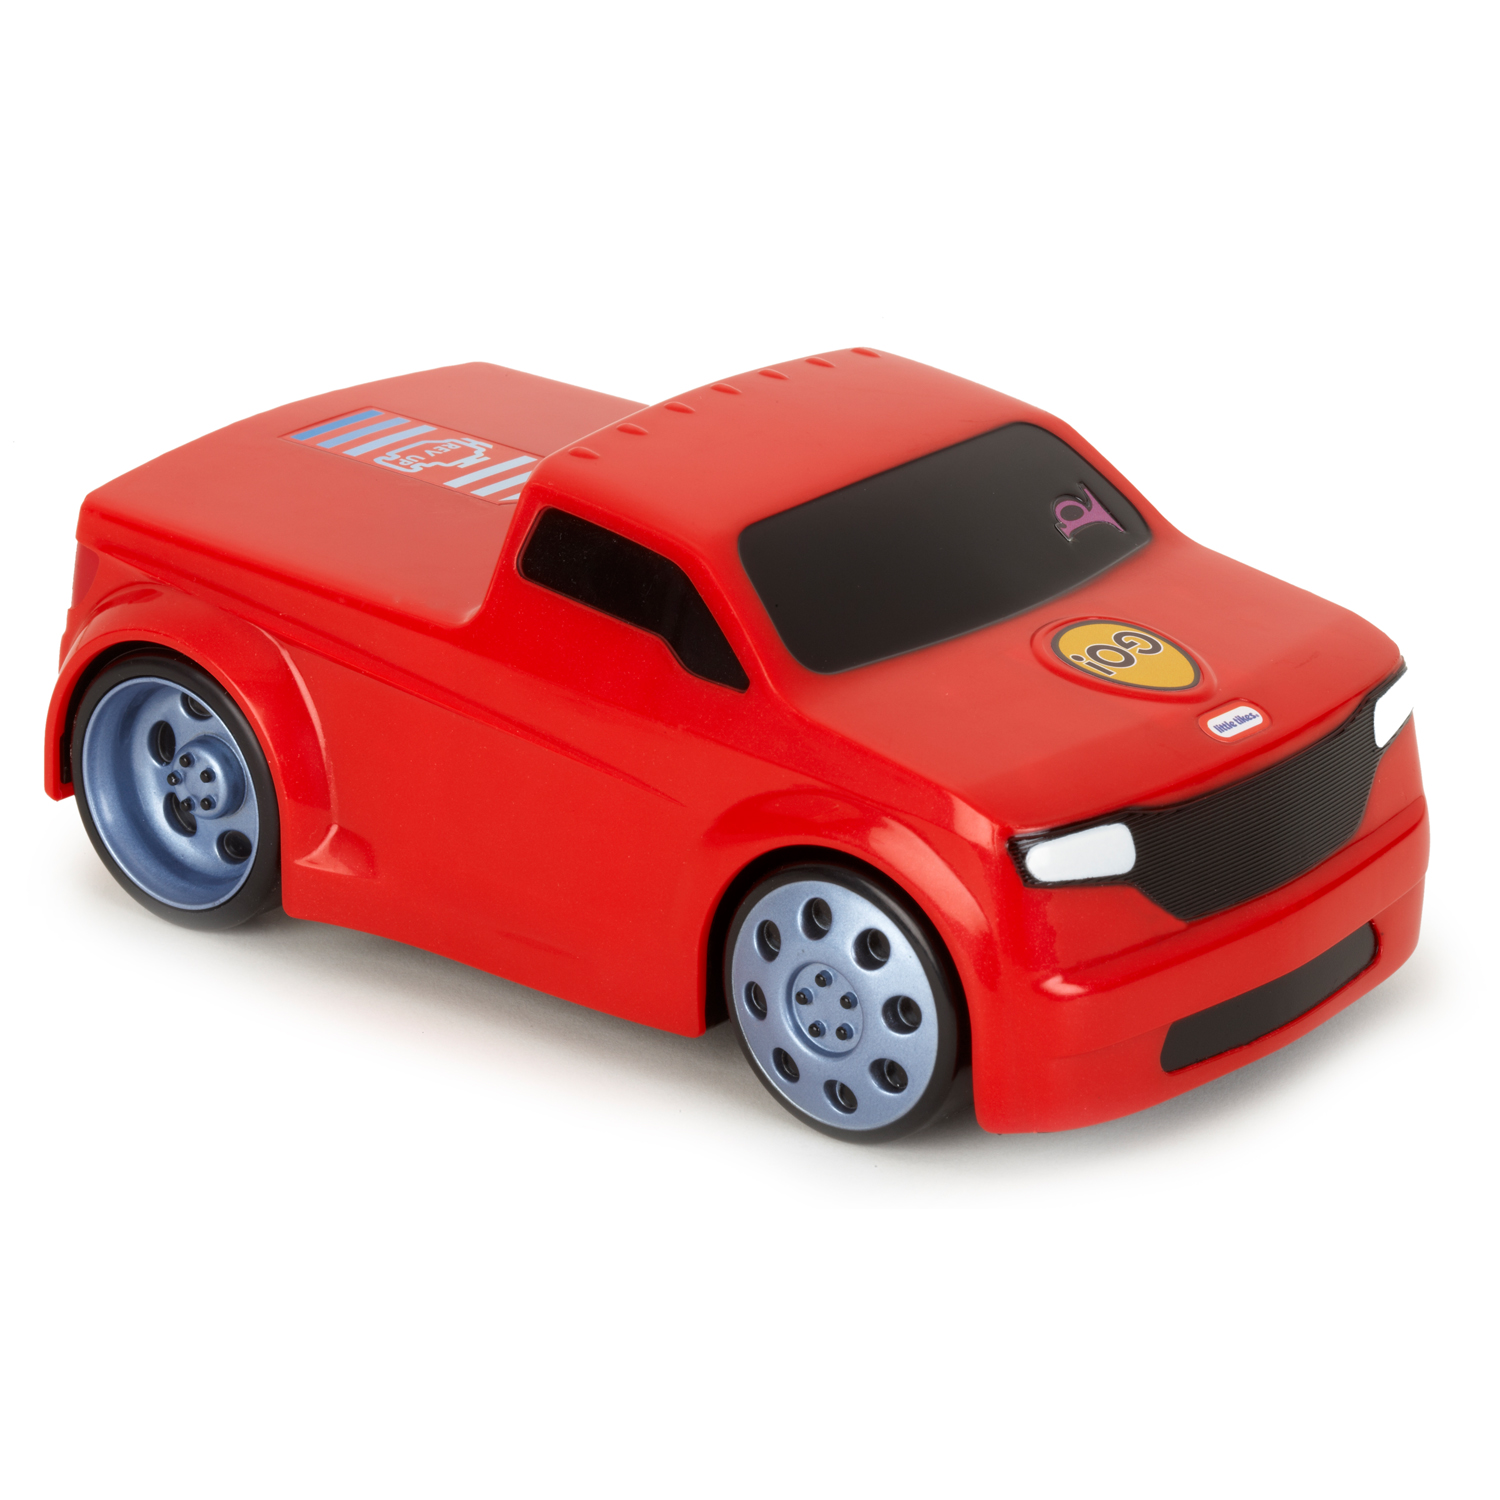 Little Tikes Touch n' Go Racer- Red Truck